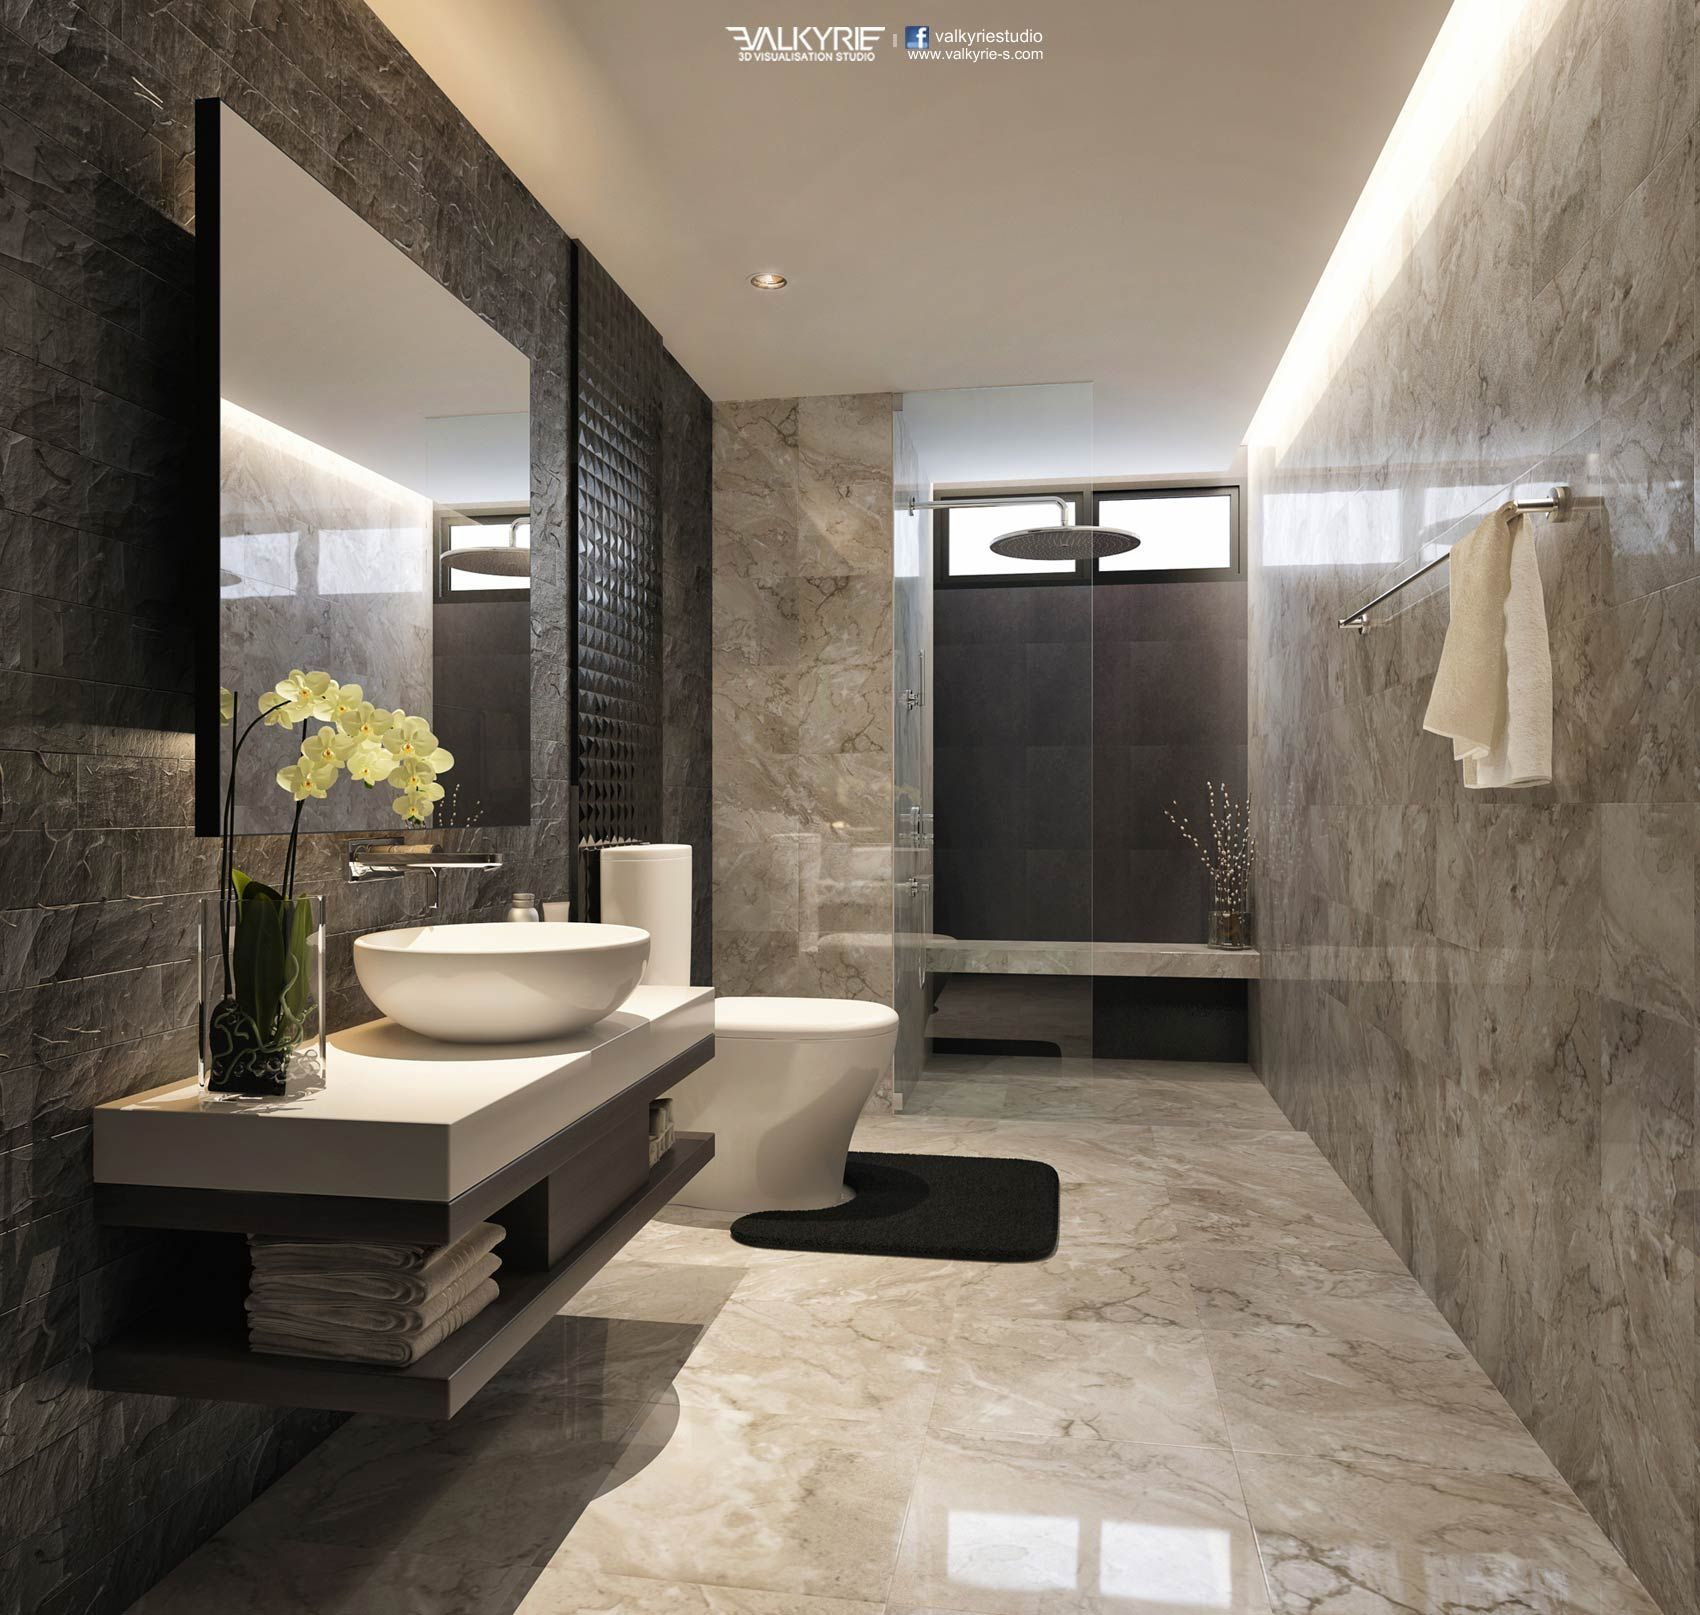 Working in a bathroom project? Get your inspiration here ...